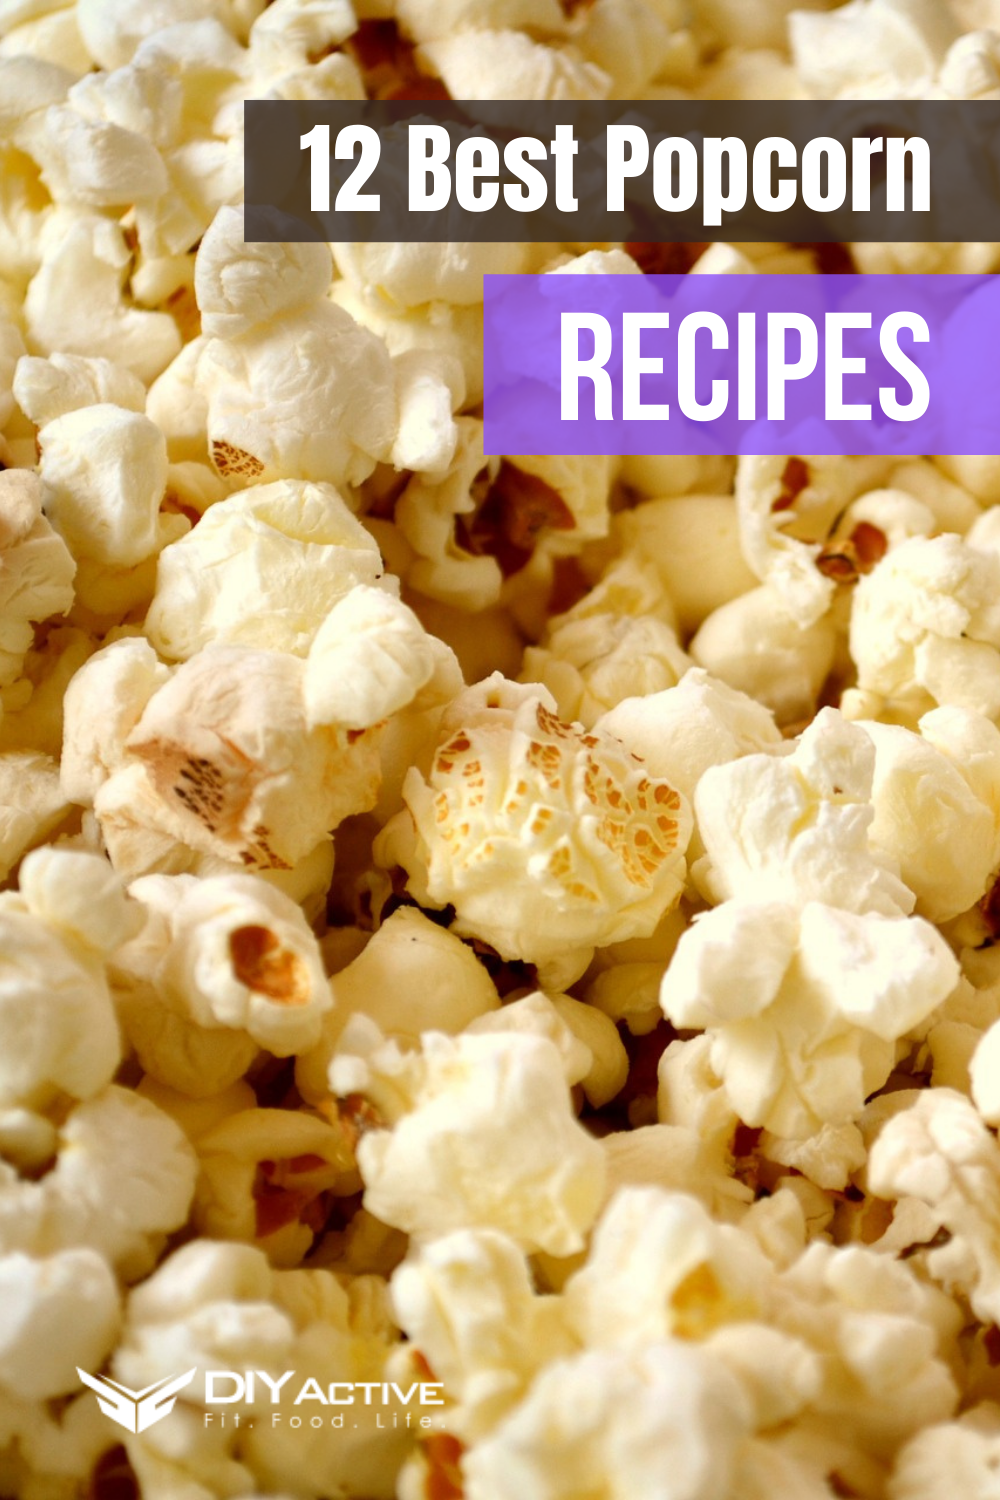 12 Best Popcorn Recipes for You to Try